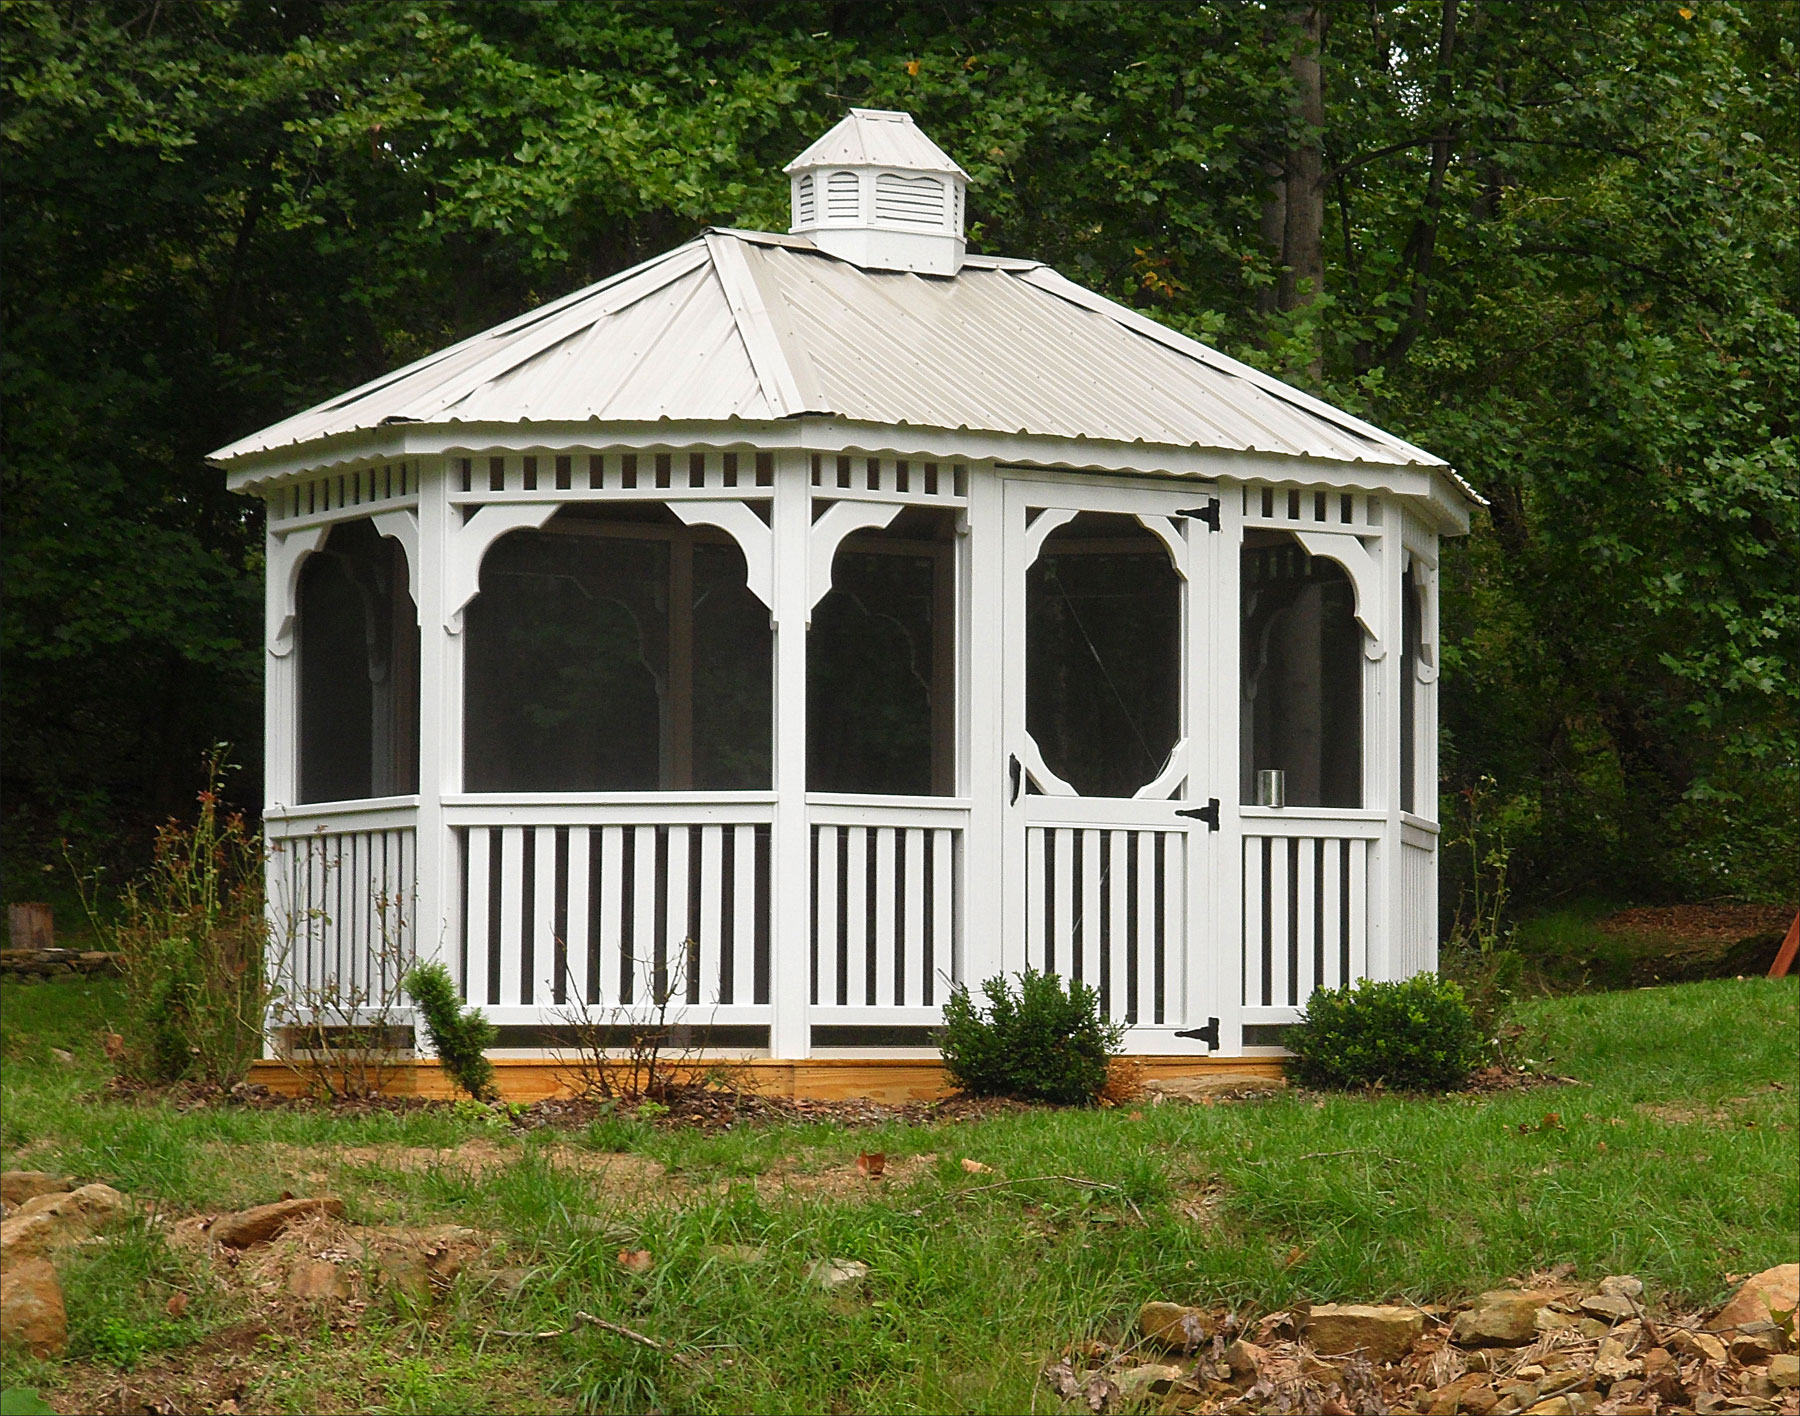 http://www.cedarstore.com/images/CustomerGallery/Zoom2/10x14-Treated-Pine-Oval-Gazebo-A.jpg